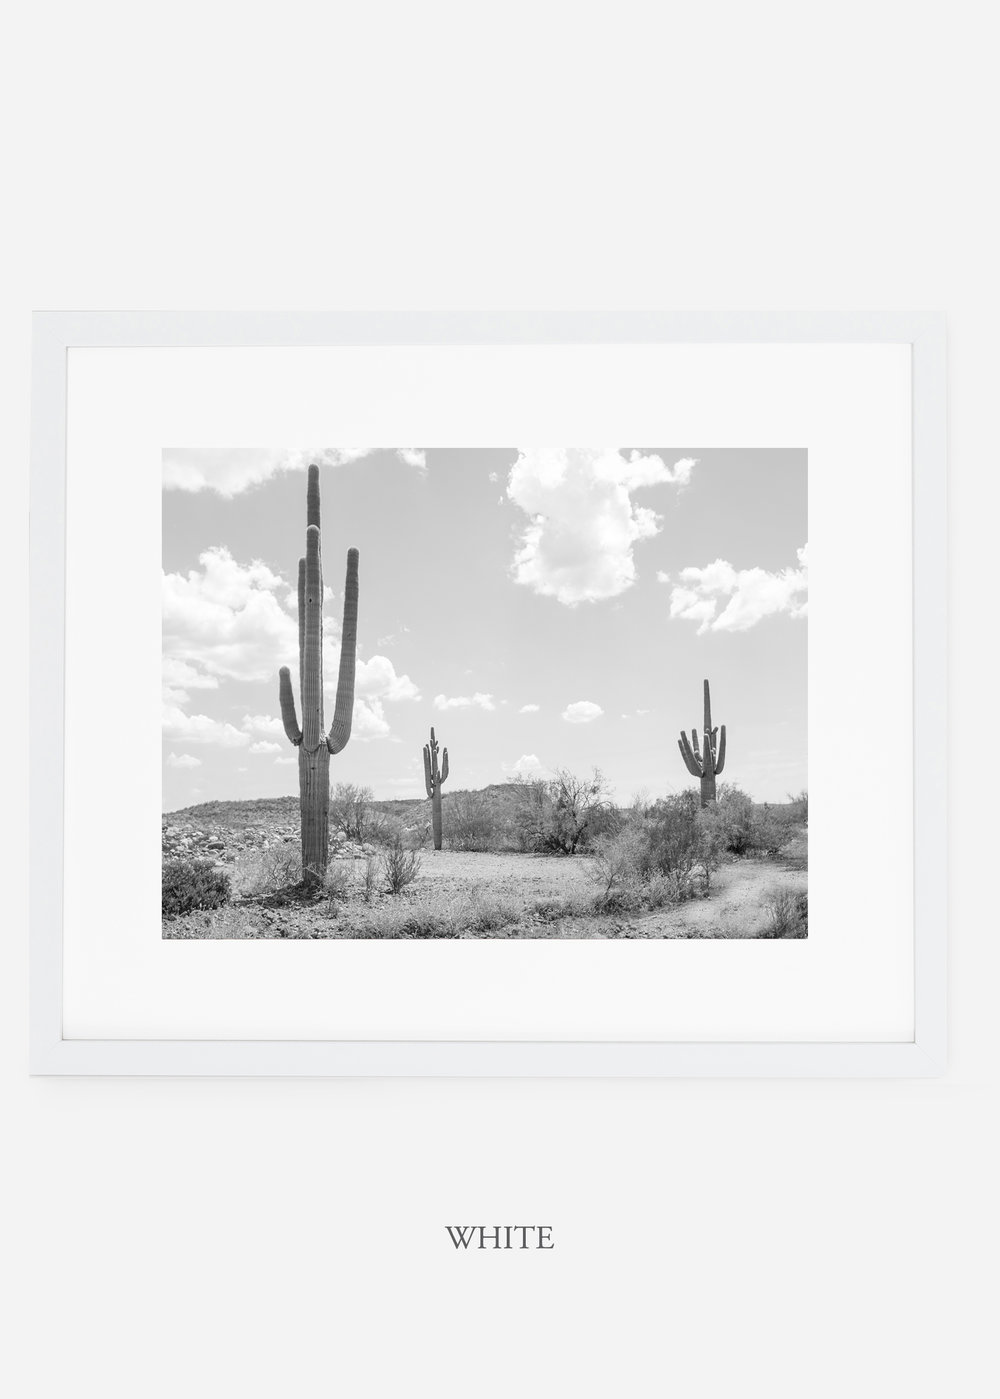 wildercalifornia_whiteframe_threesaguaro_cactus_art_interiordesign.jpg